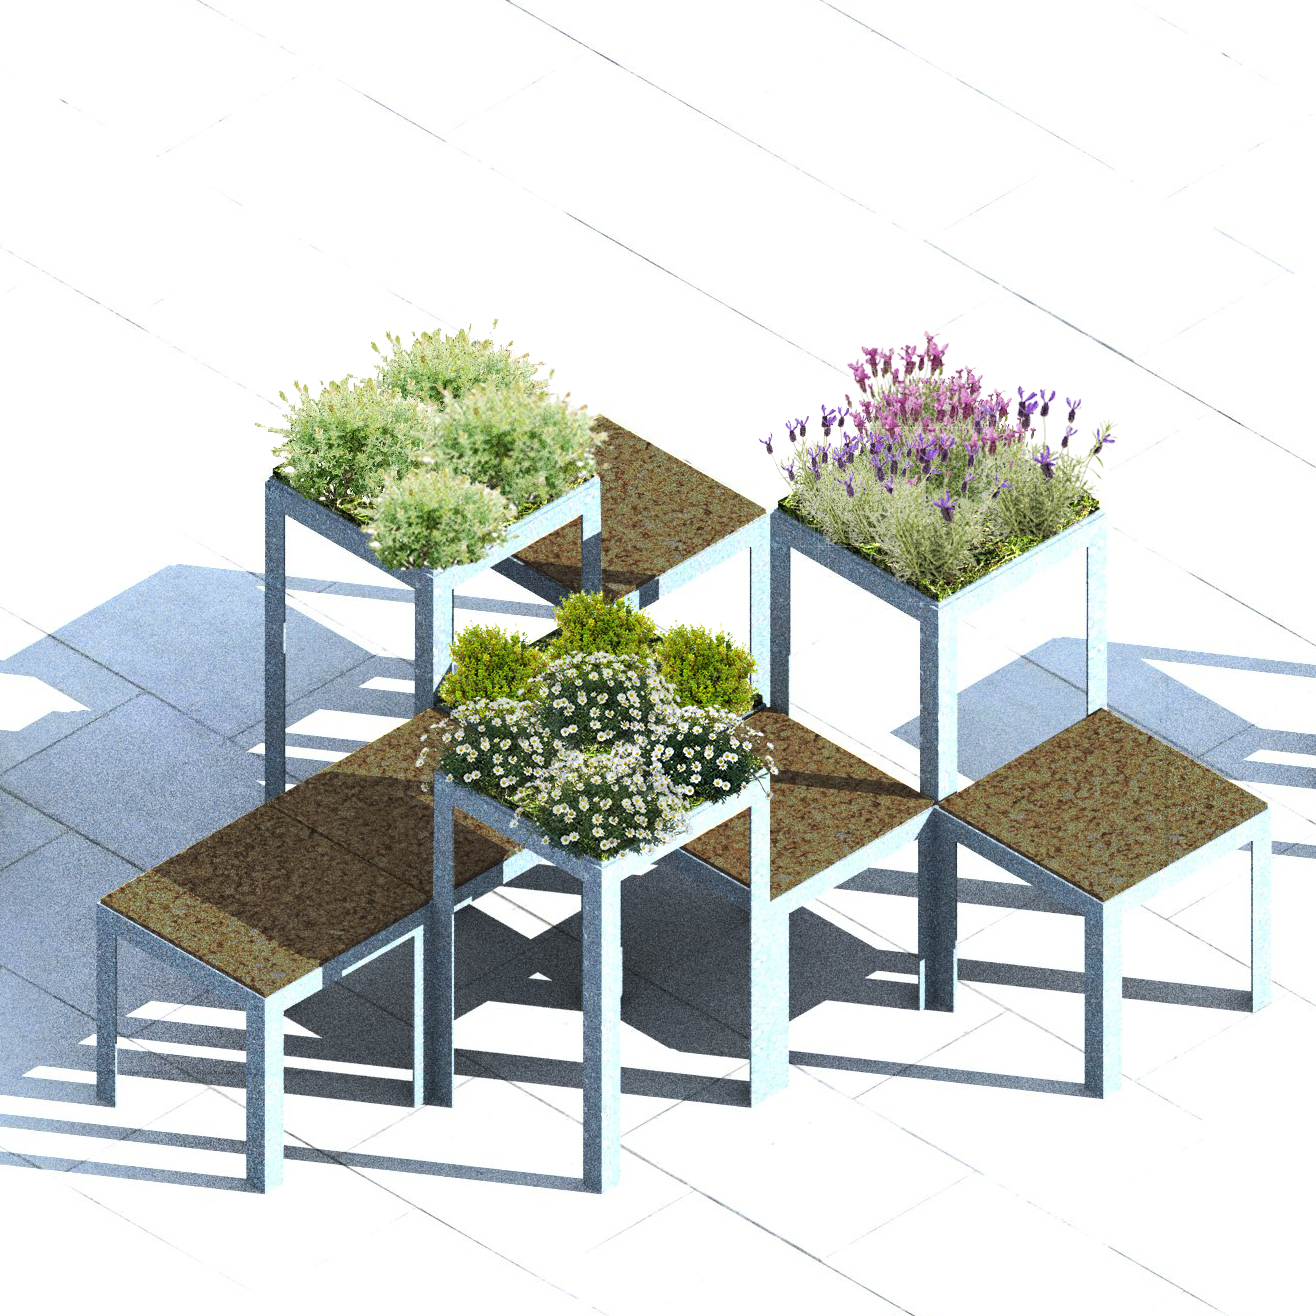 Excited to announce we are one of 10 practices selected for the City Of London Benches Competition as part of the London Festival of Architecture more information to come...  See More